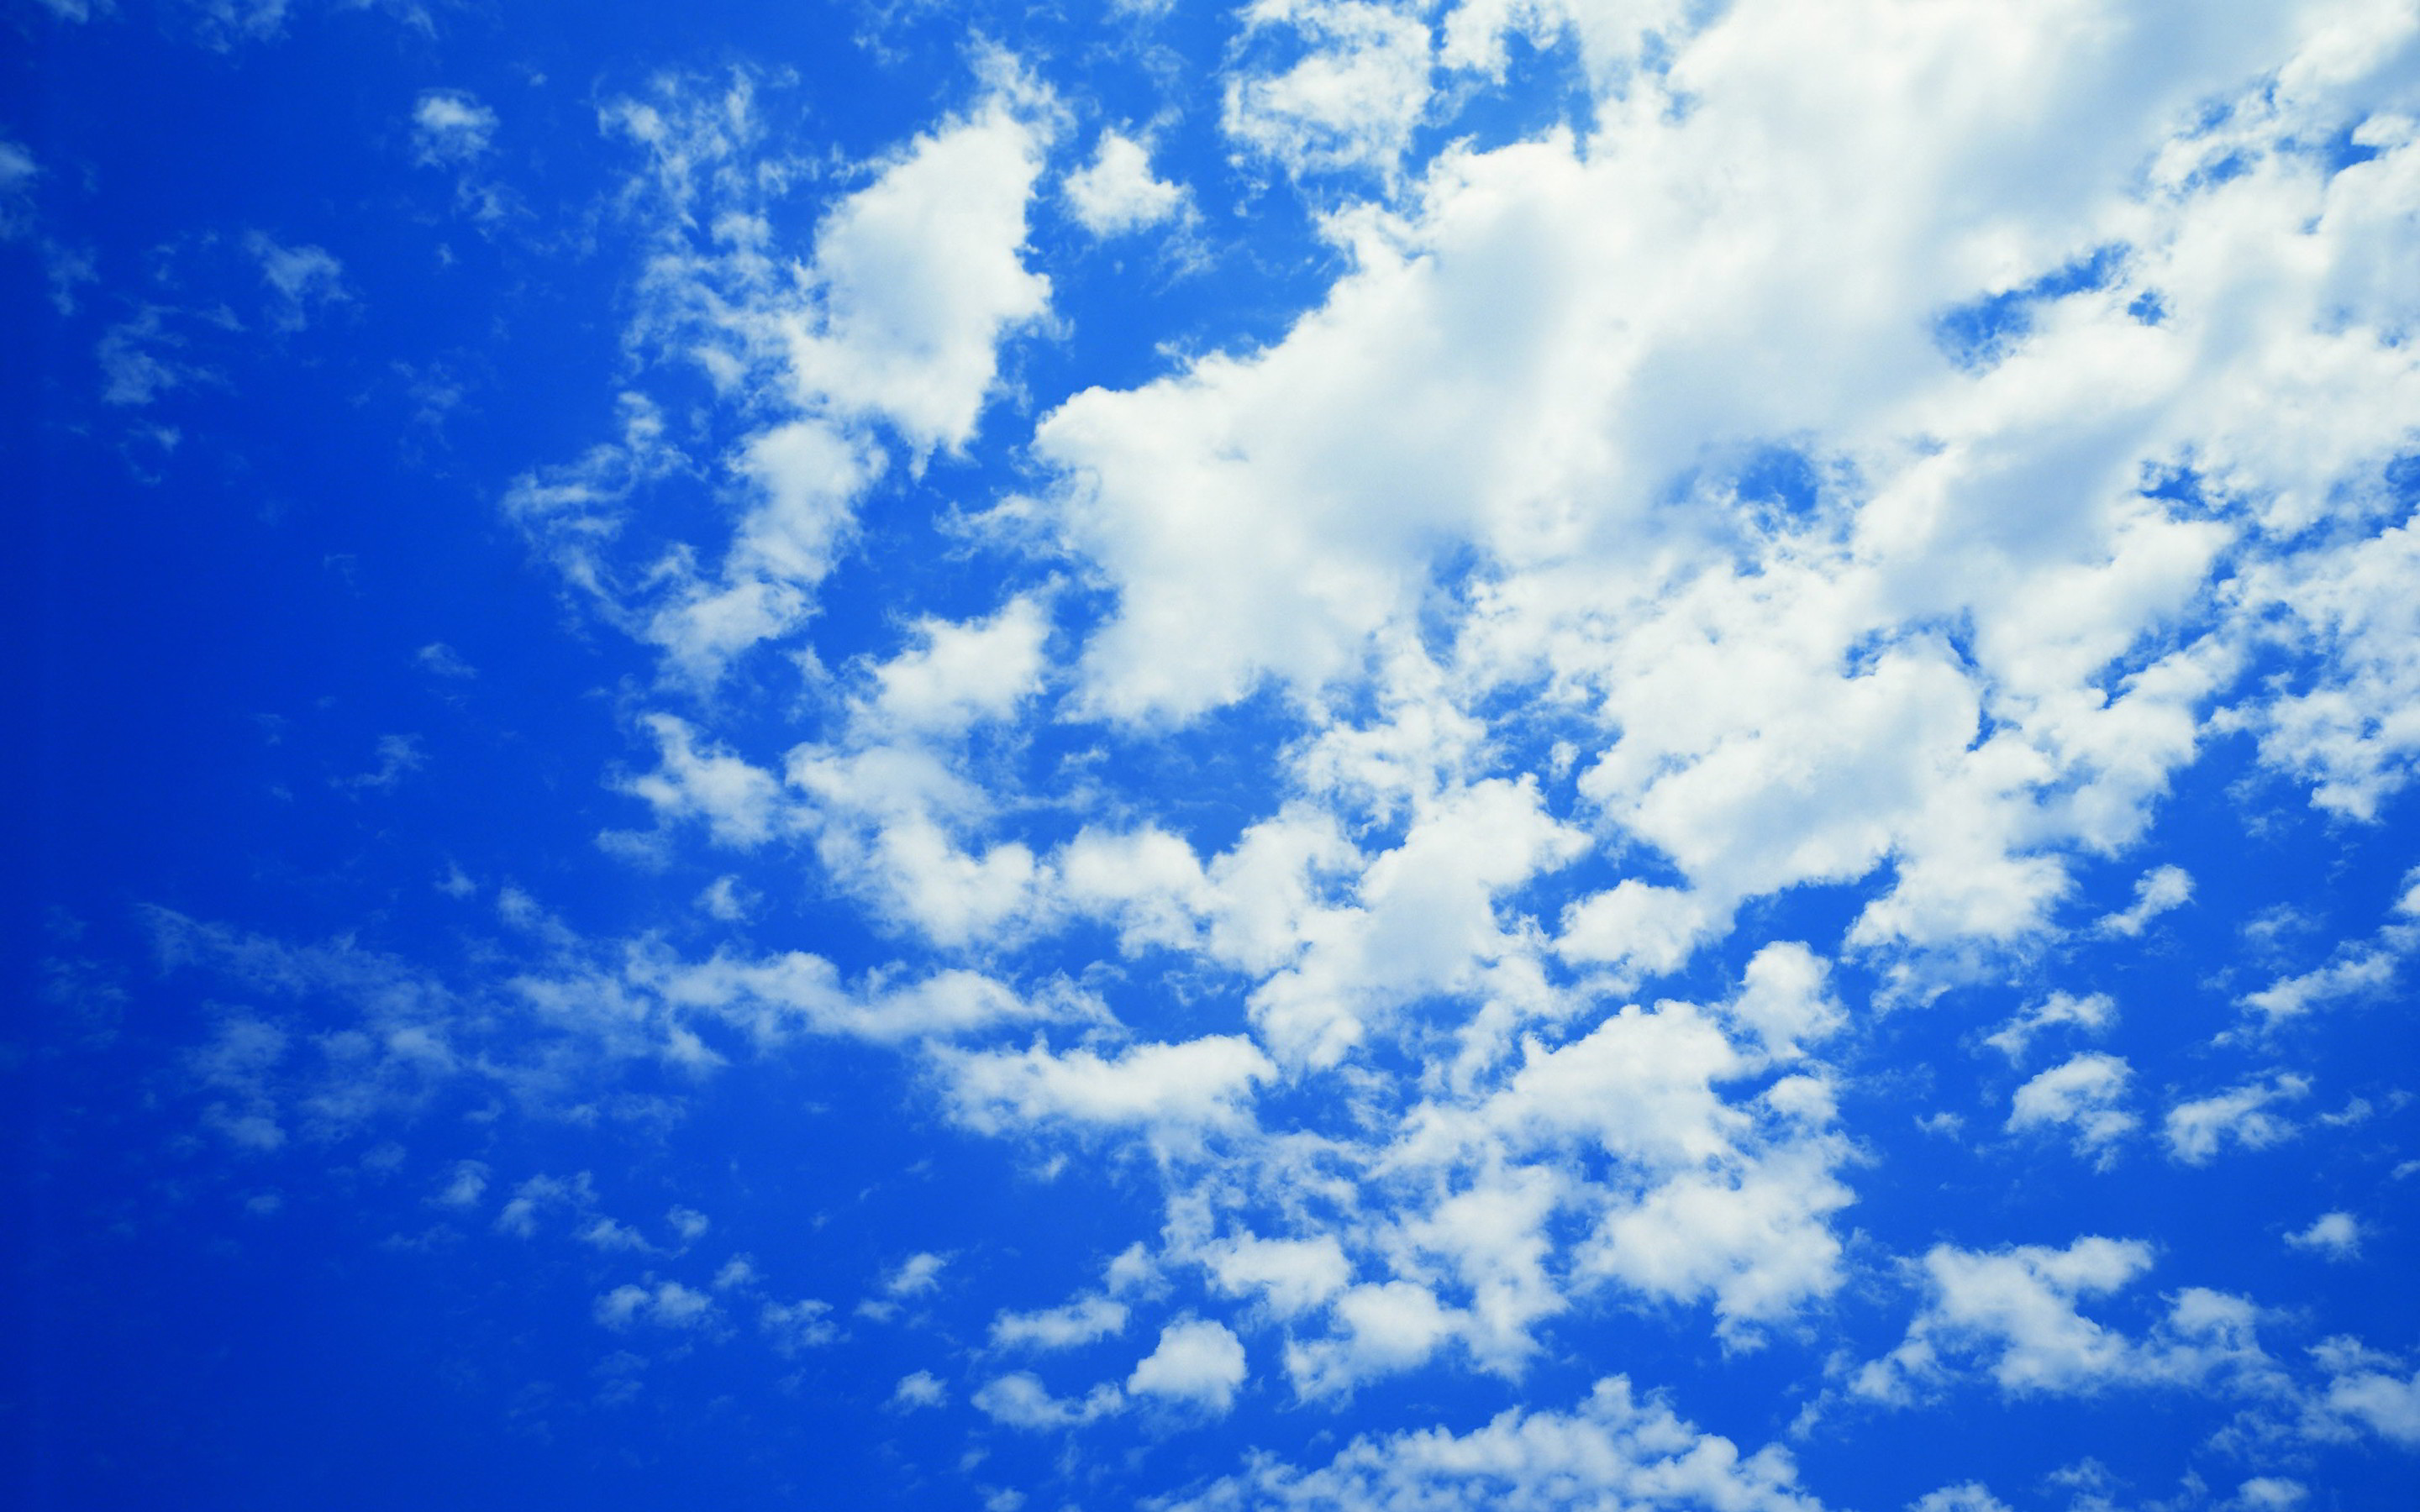 2880x1800 Blue Sky Wallpapers - Blue Sky desktop wallpapers - 1380 and wallpapers